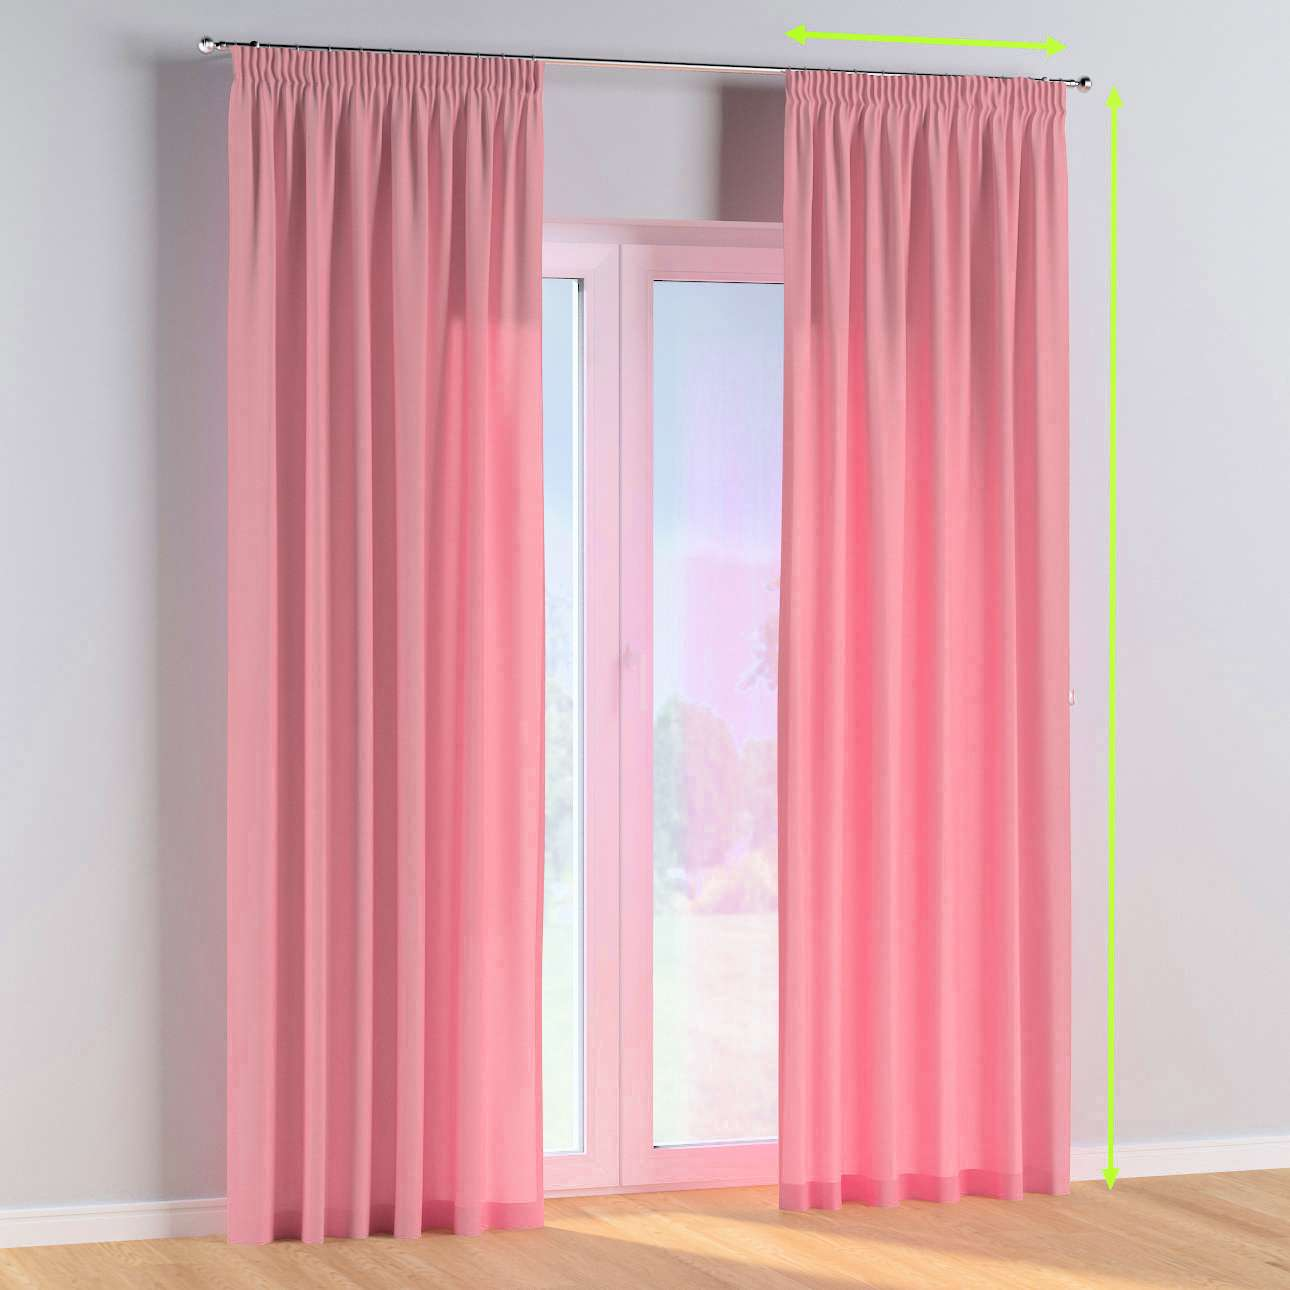 Pencil pleat curtains in collection Happiness, fabric: 133-62